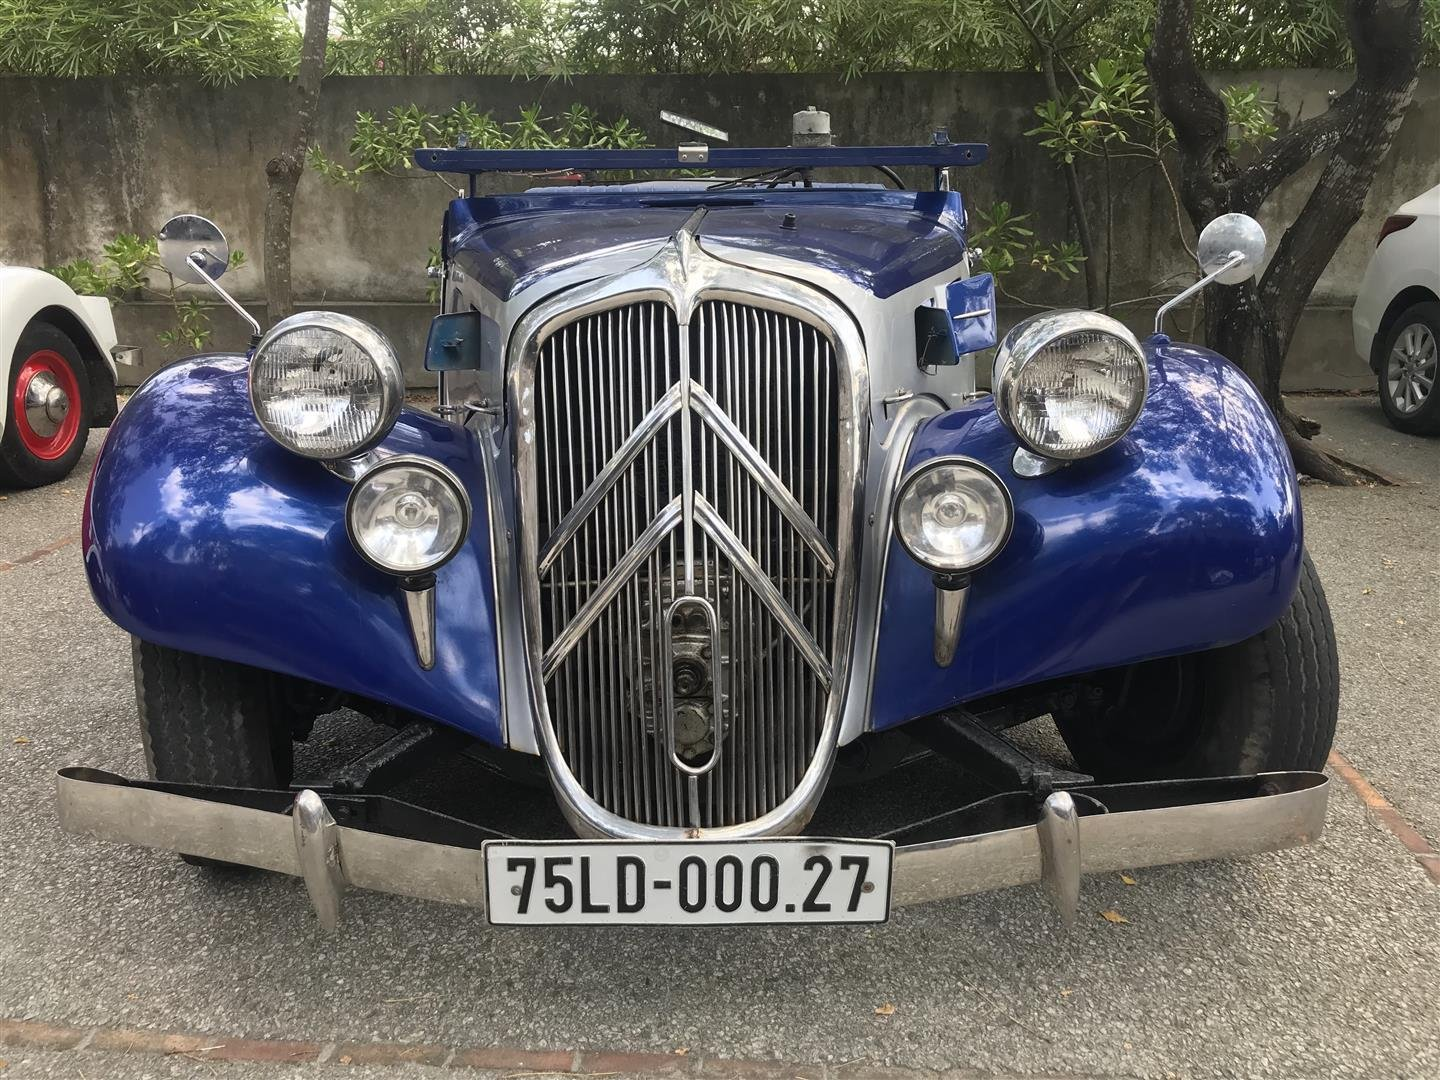 1938 Citroën 11B roadster '38 For Sale (picture 2 of 6)